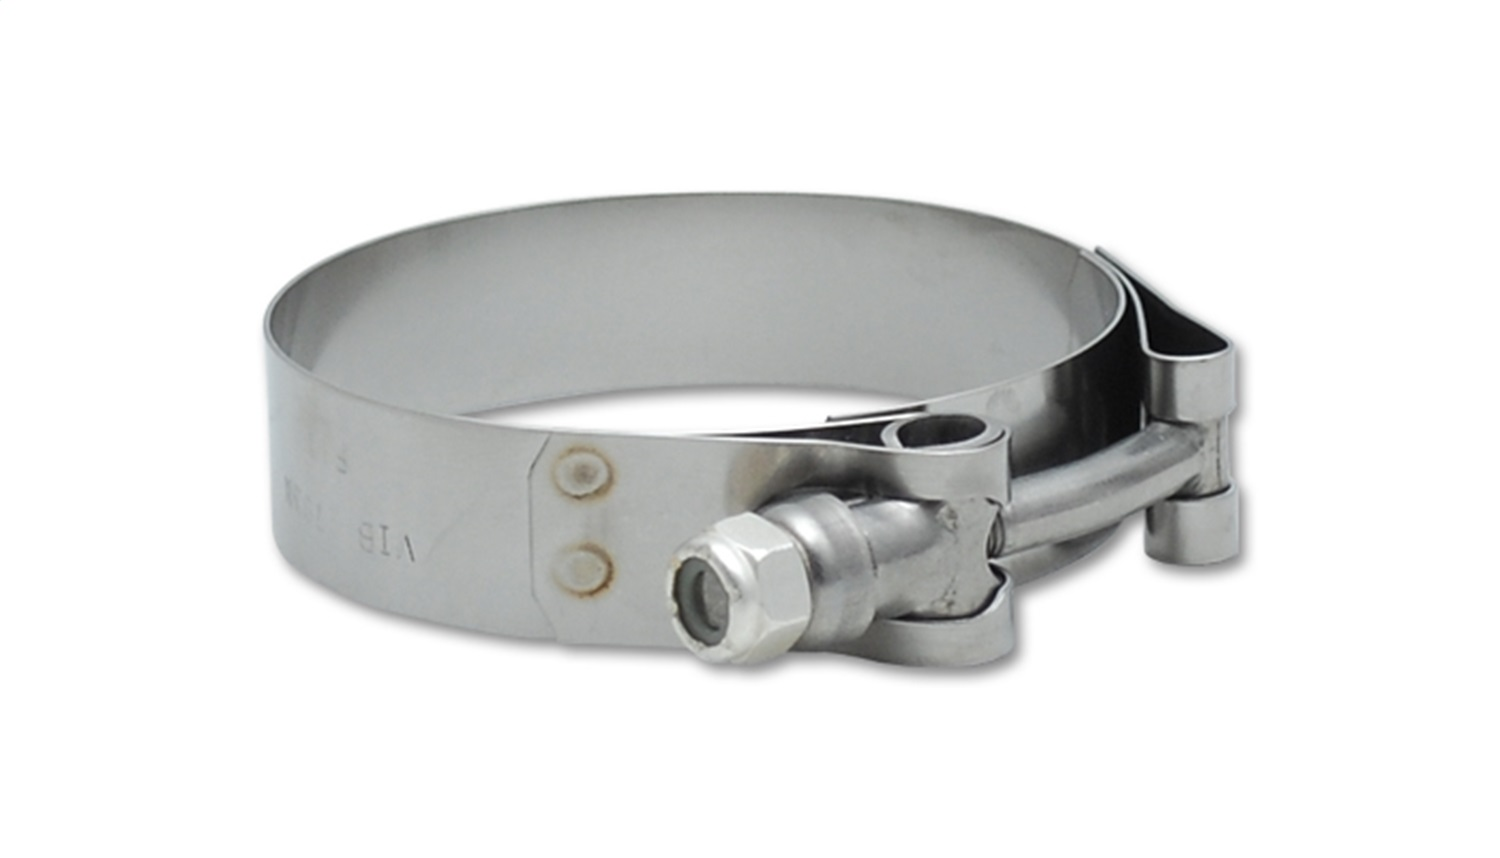 Vibrant Performance 2788 304 Stainless Steel T-Bolt Clamp